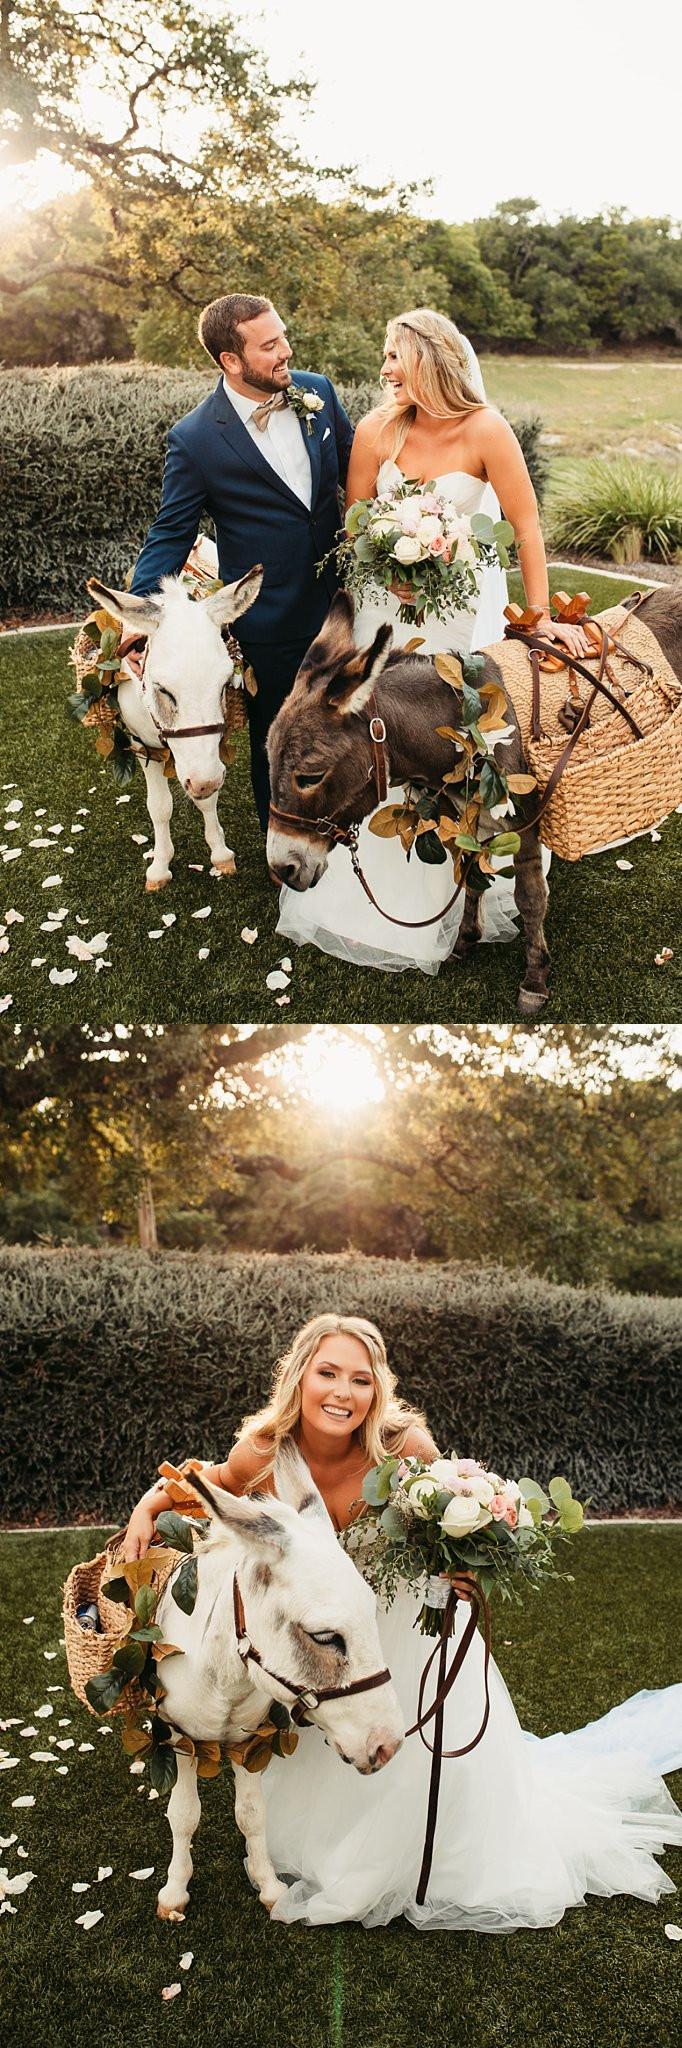 Wedding at The Kendall Point Wedding Venue, Wedding at The Kendall Plantation in Boerne, TX, Snap Chic Photography, Boerne and San Antonio Wedding Photographer, Boerne Wedding Venues, Beer Burros for Wedding